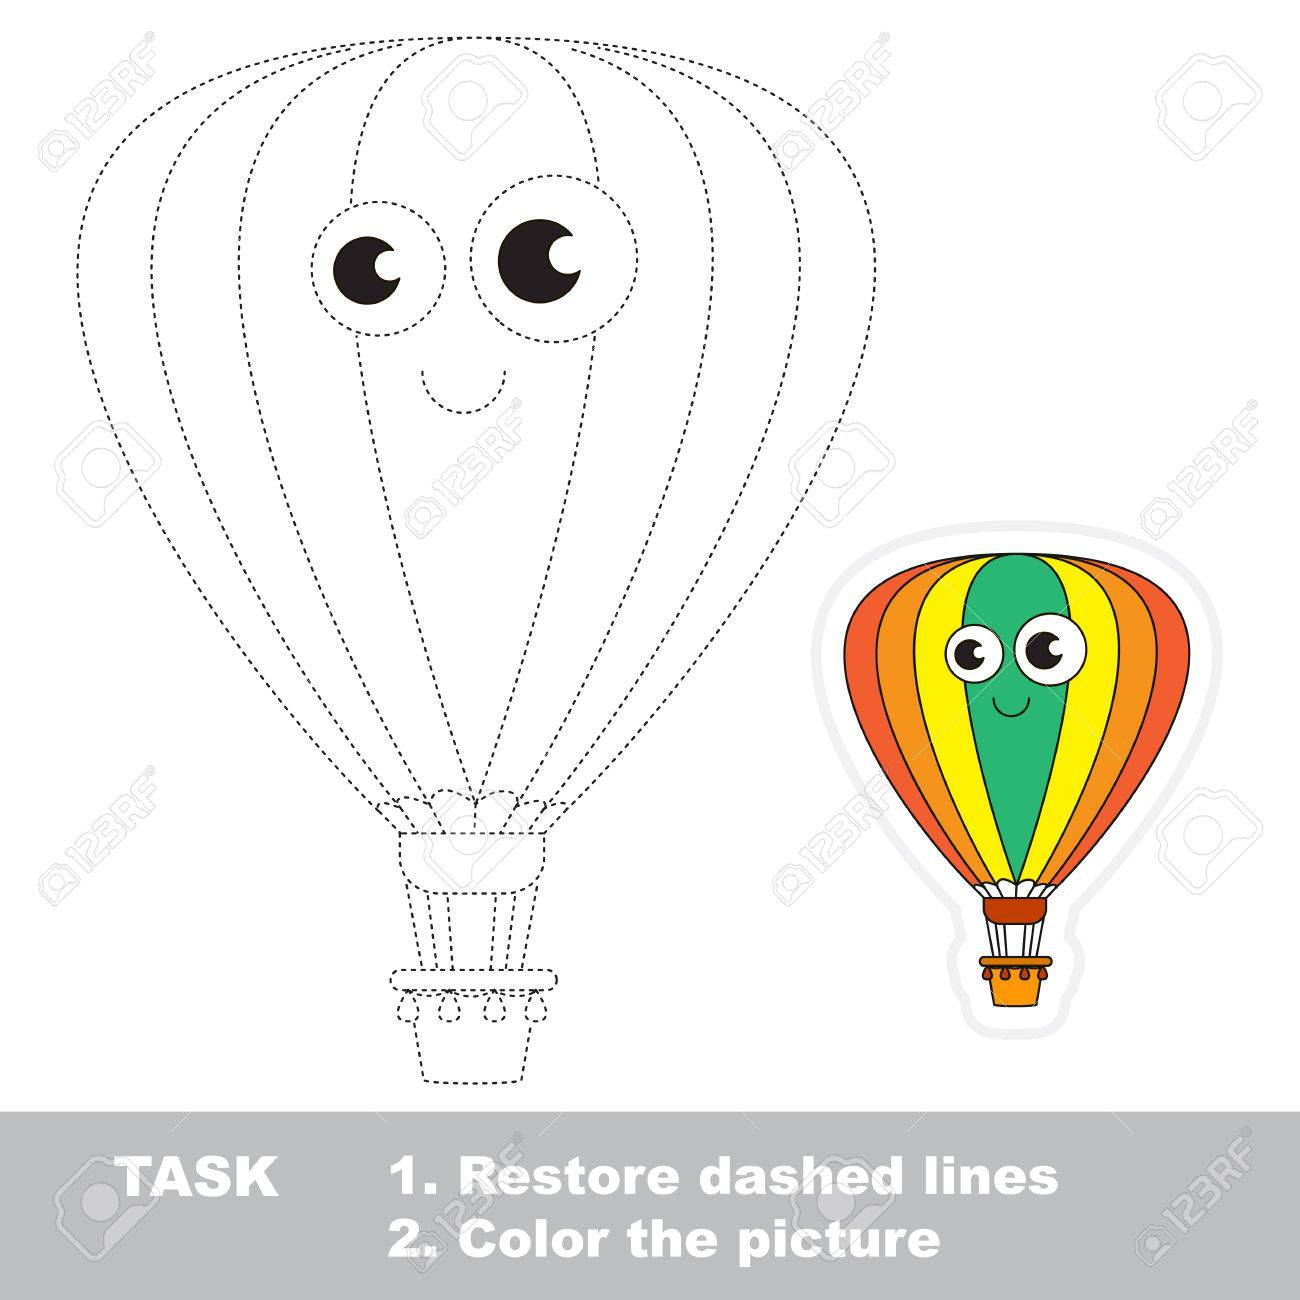 aerostat in vector to be traced easy educational kid game simple level of difficulty - Simple Pictures To Trace